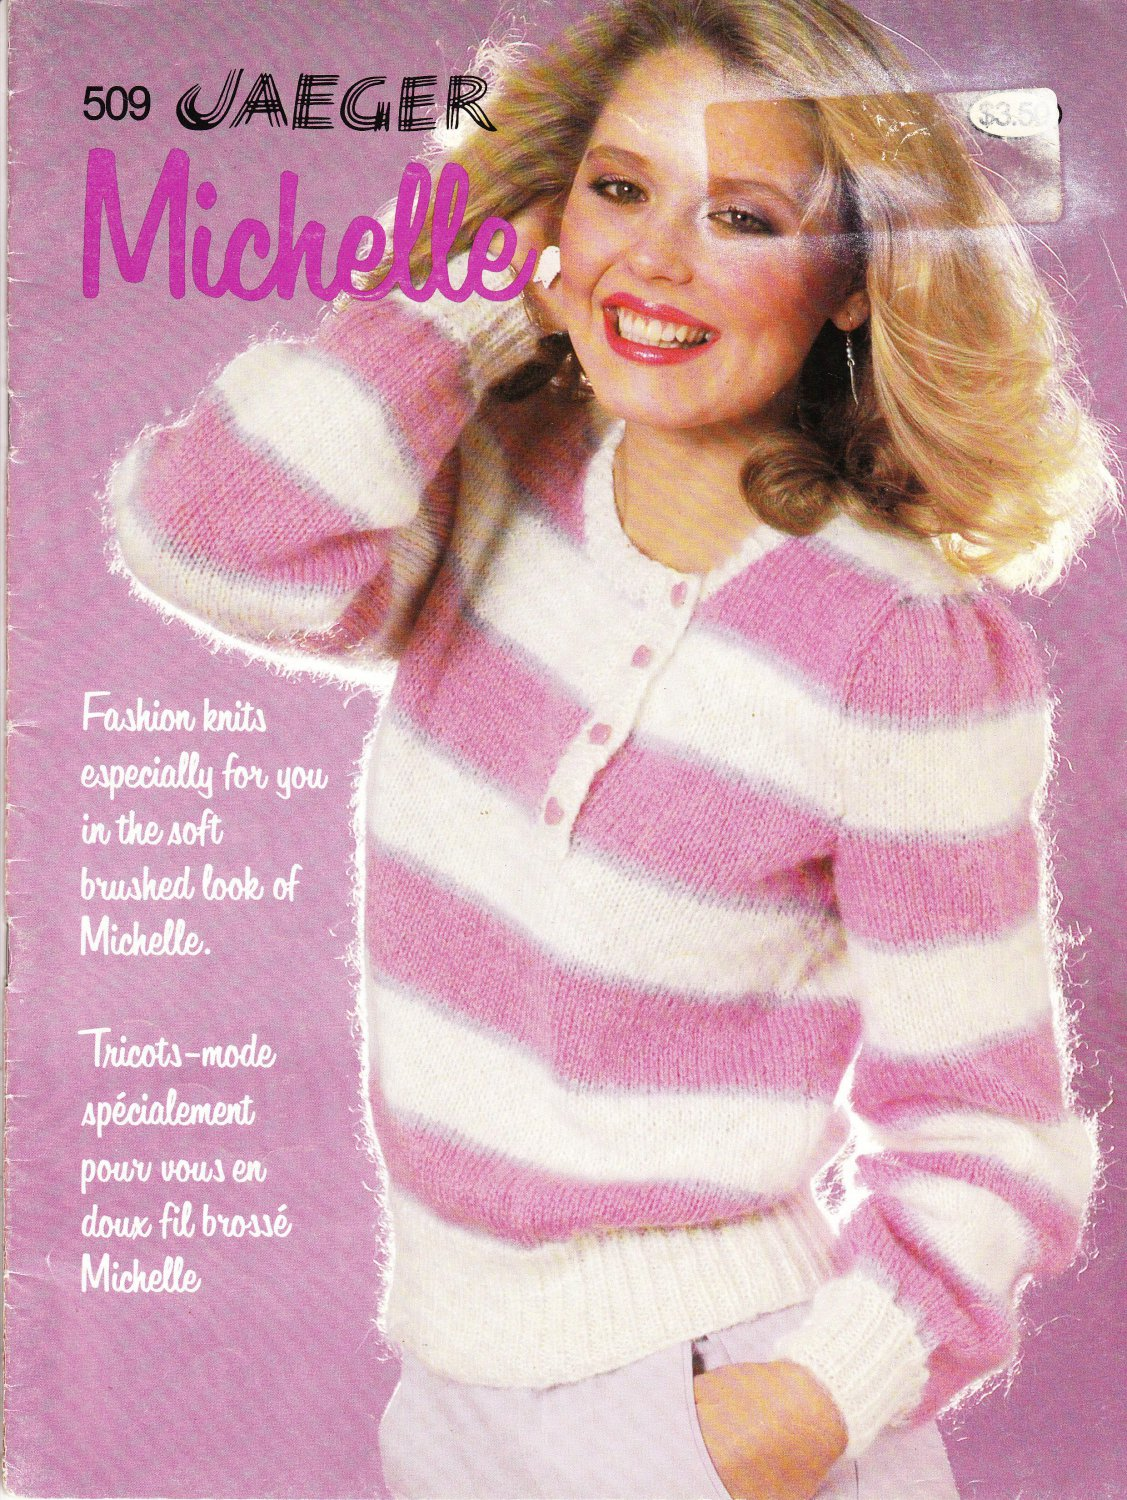 Patons Beehive Jaeger Michelle 1981 Knitting Pattern Book #509